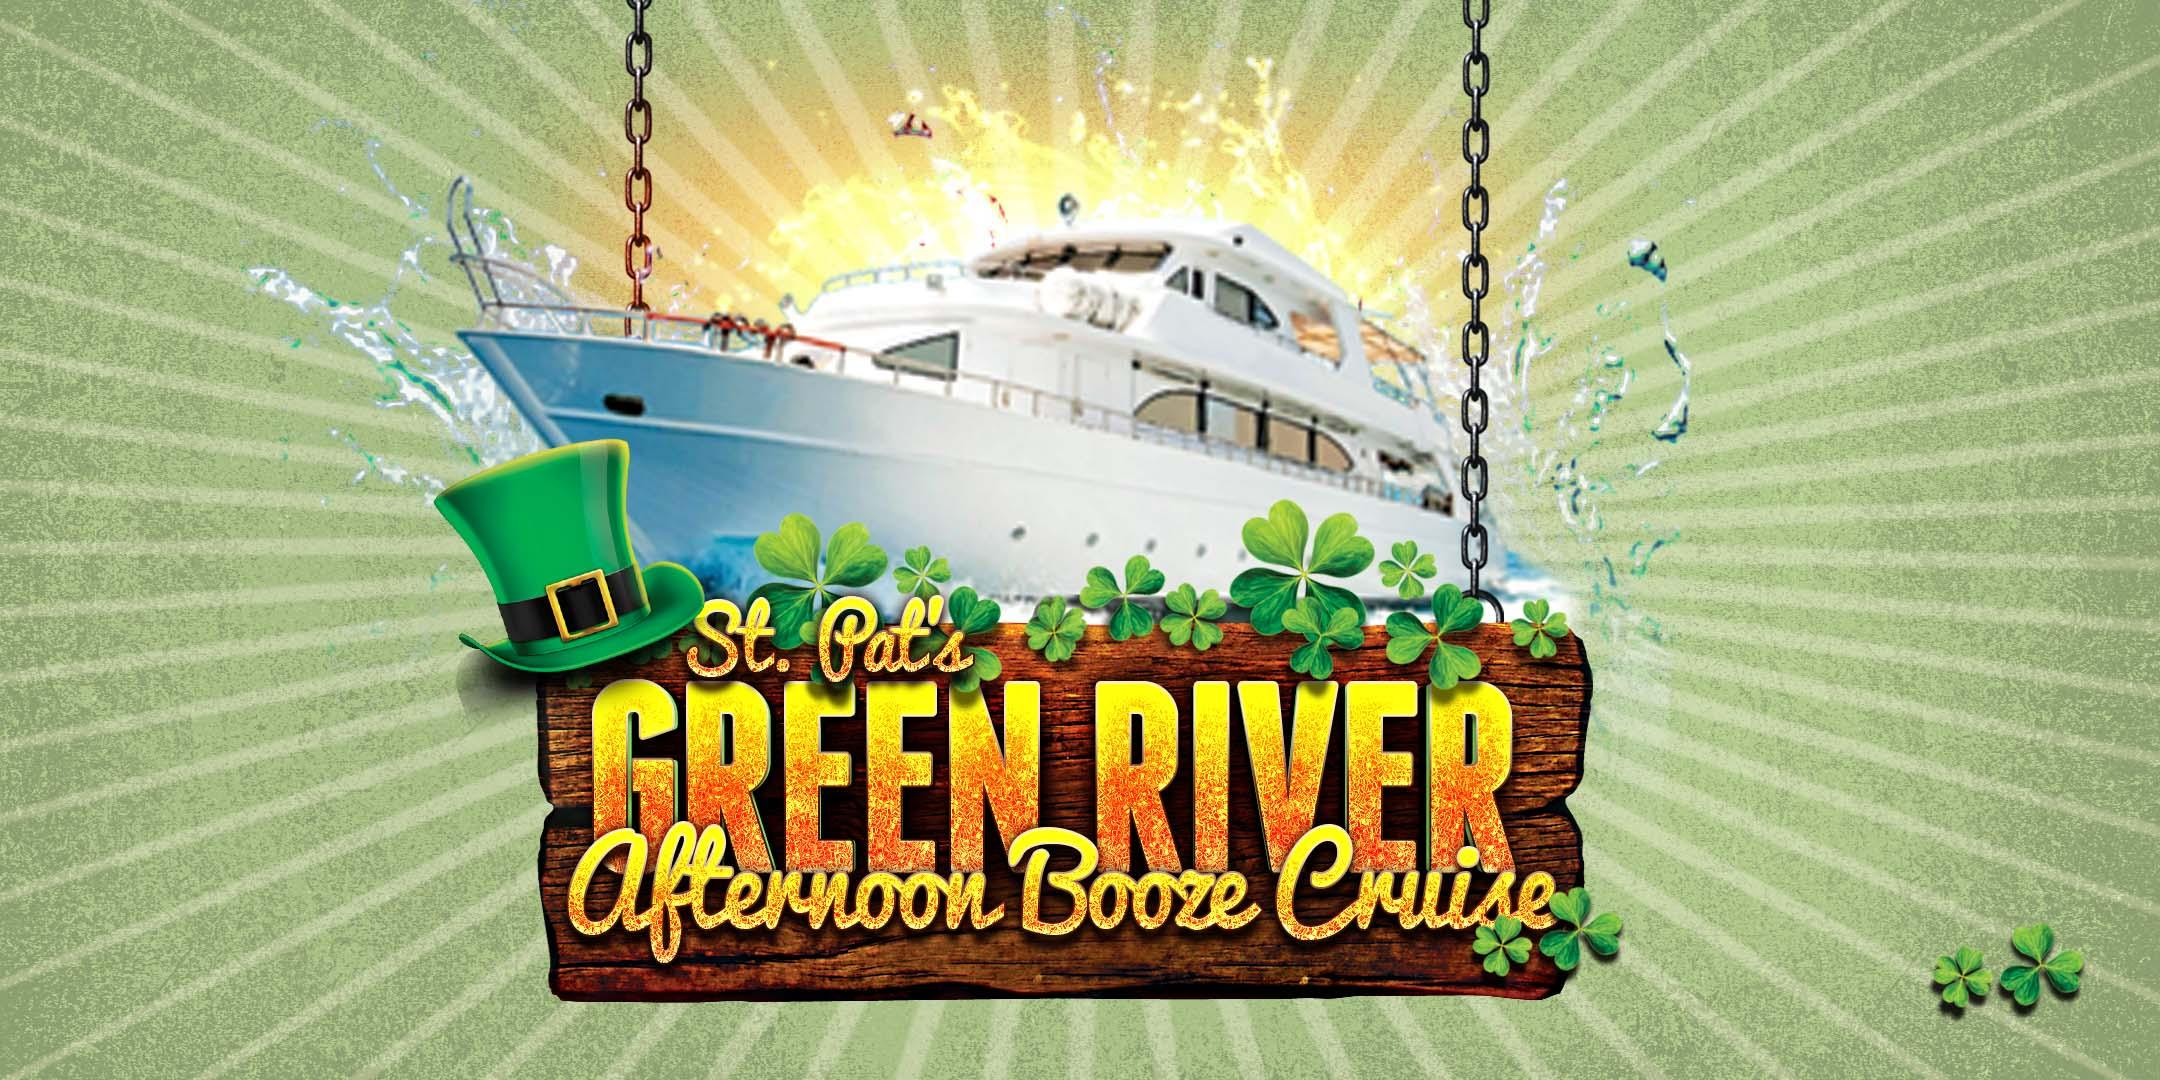 St. Pat's Green River Afternoon Booze Cruise on March 17th! (1pm)